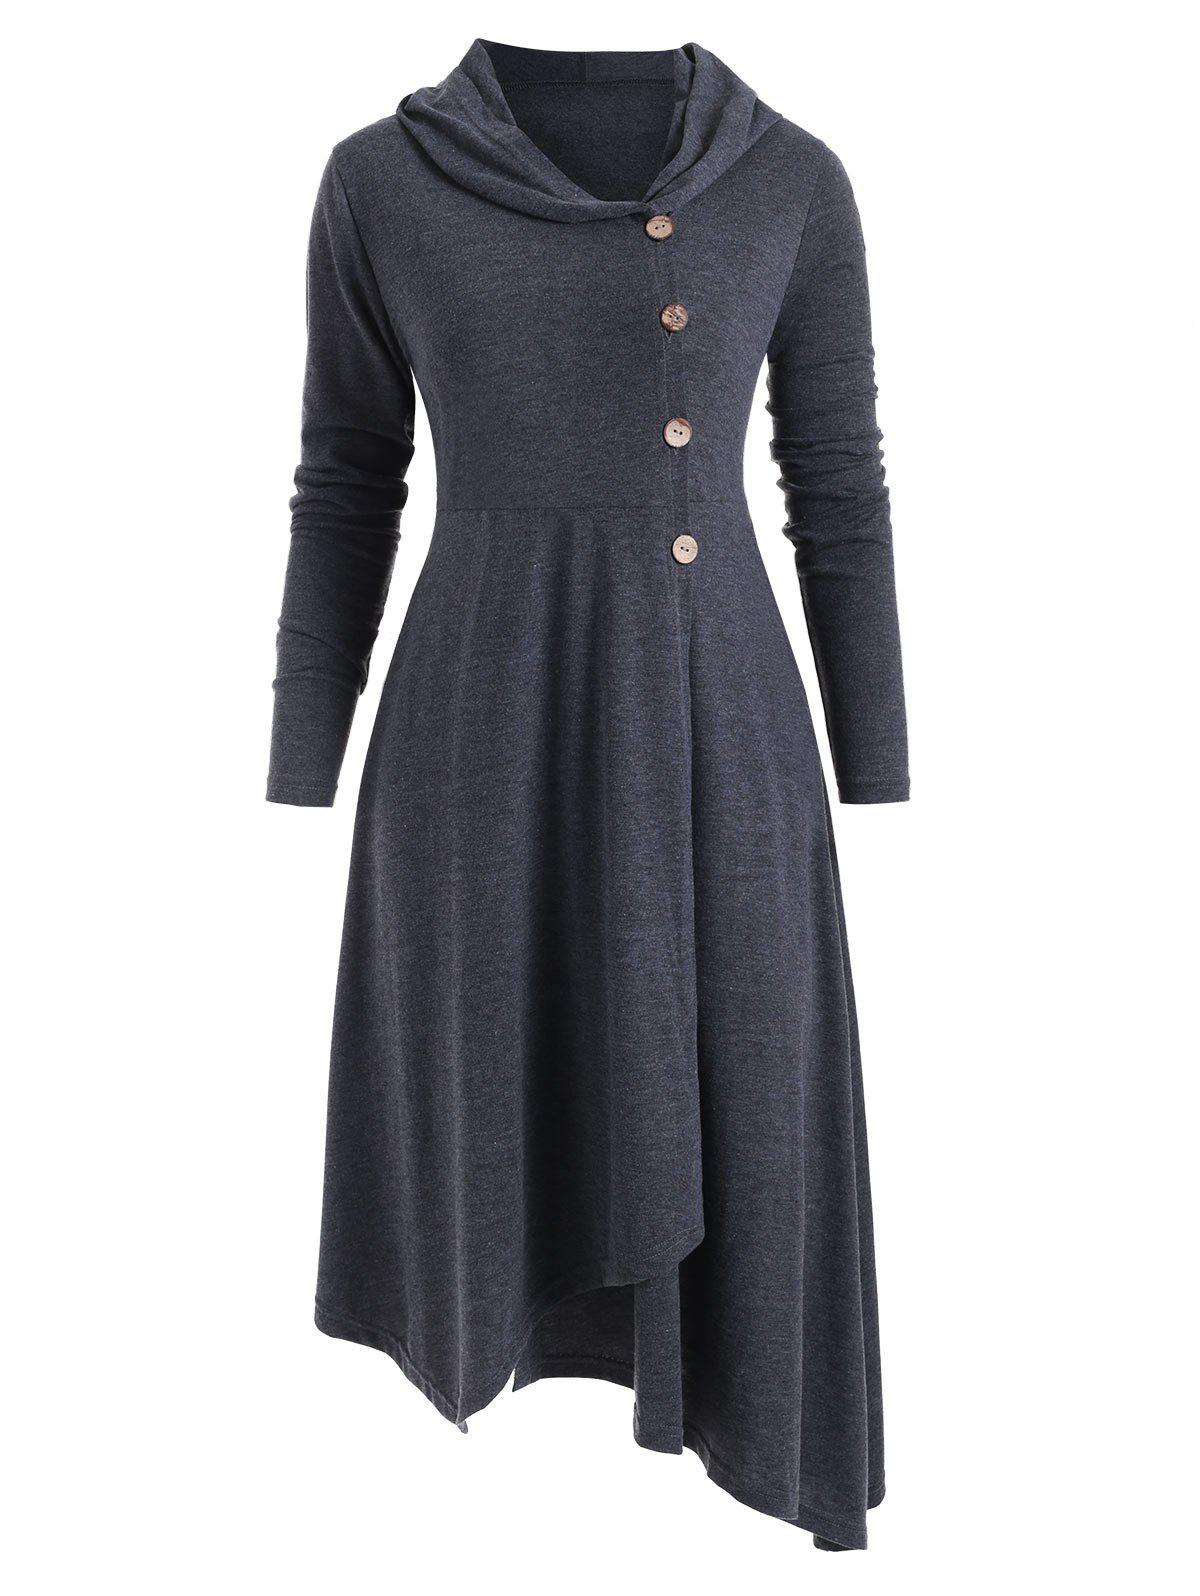 Hooded Asymmetrical Longline Button Up Coat - GRAY 2XL